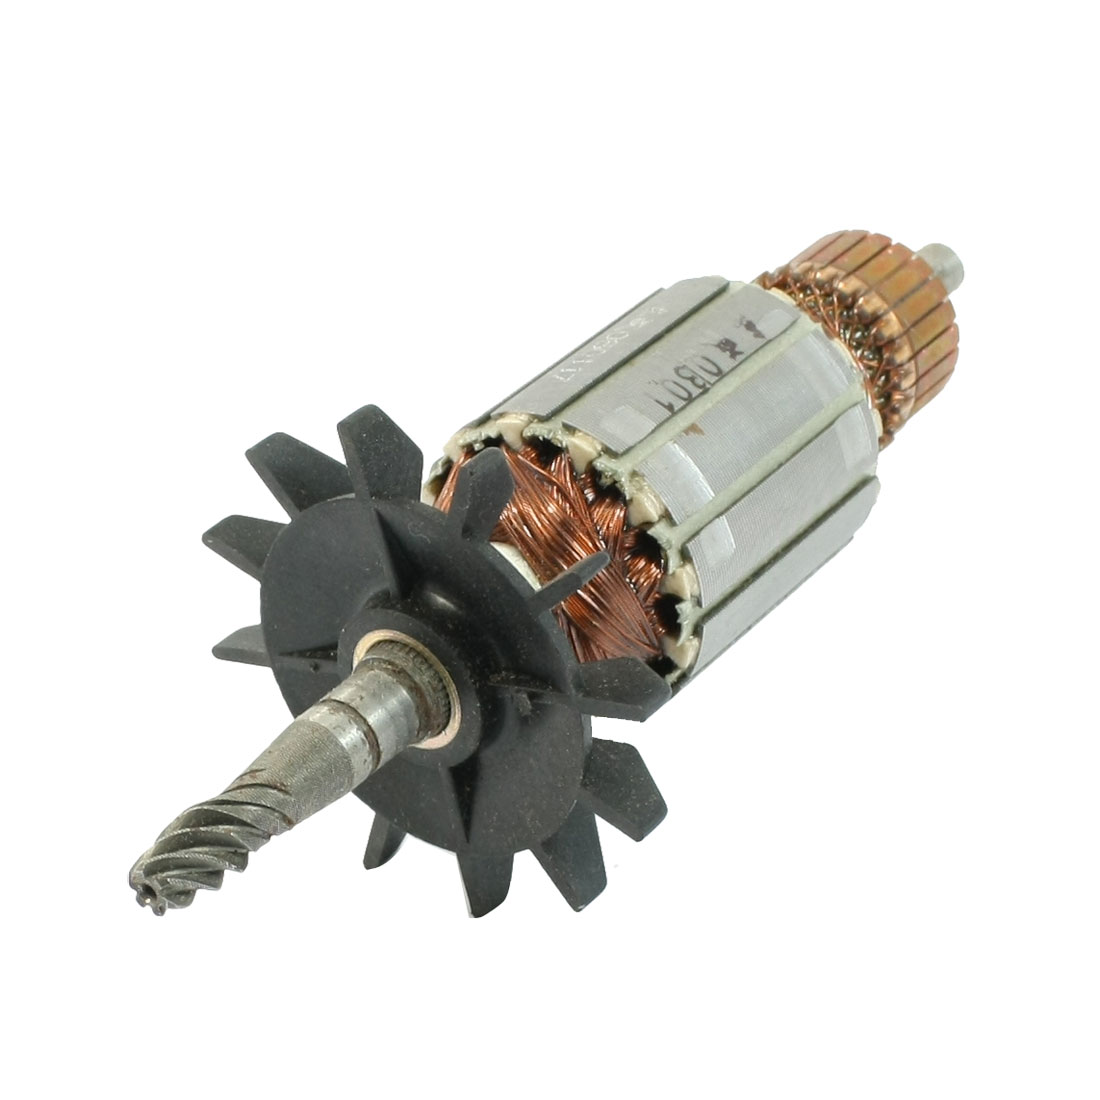 AC 220V Churn Drill Replacement 6 Teeth Shaft Electric Motor Rotor for Makita 4100NB